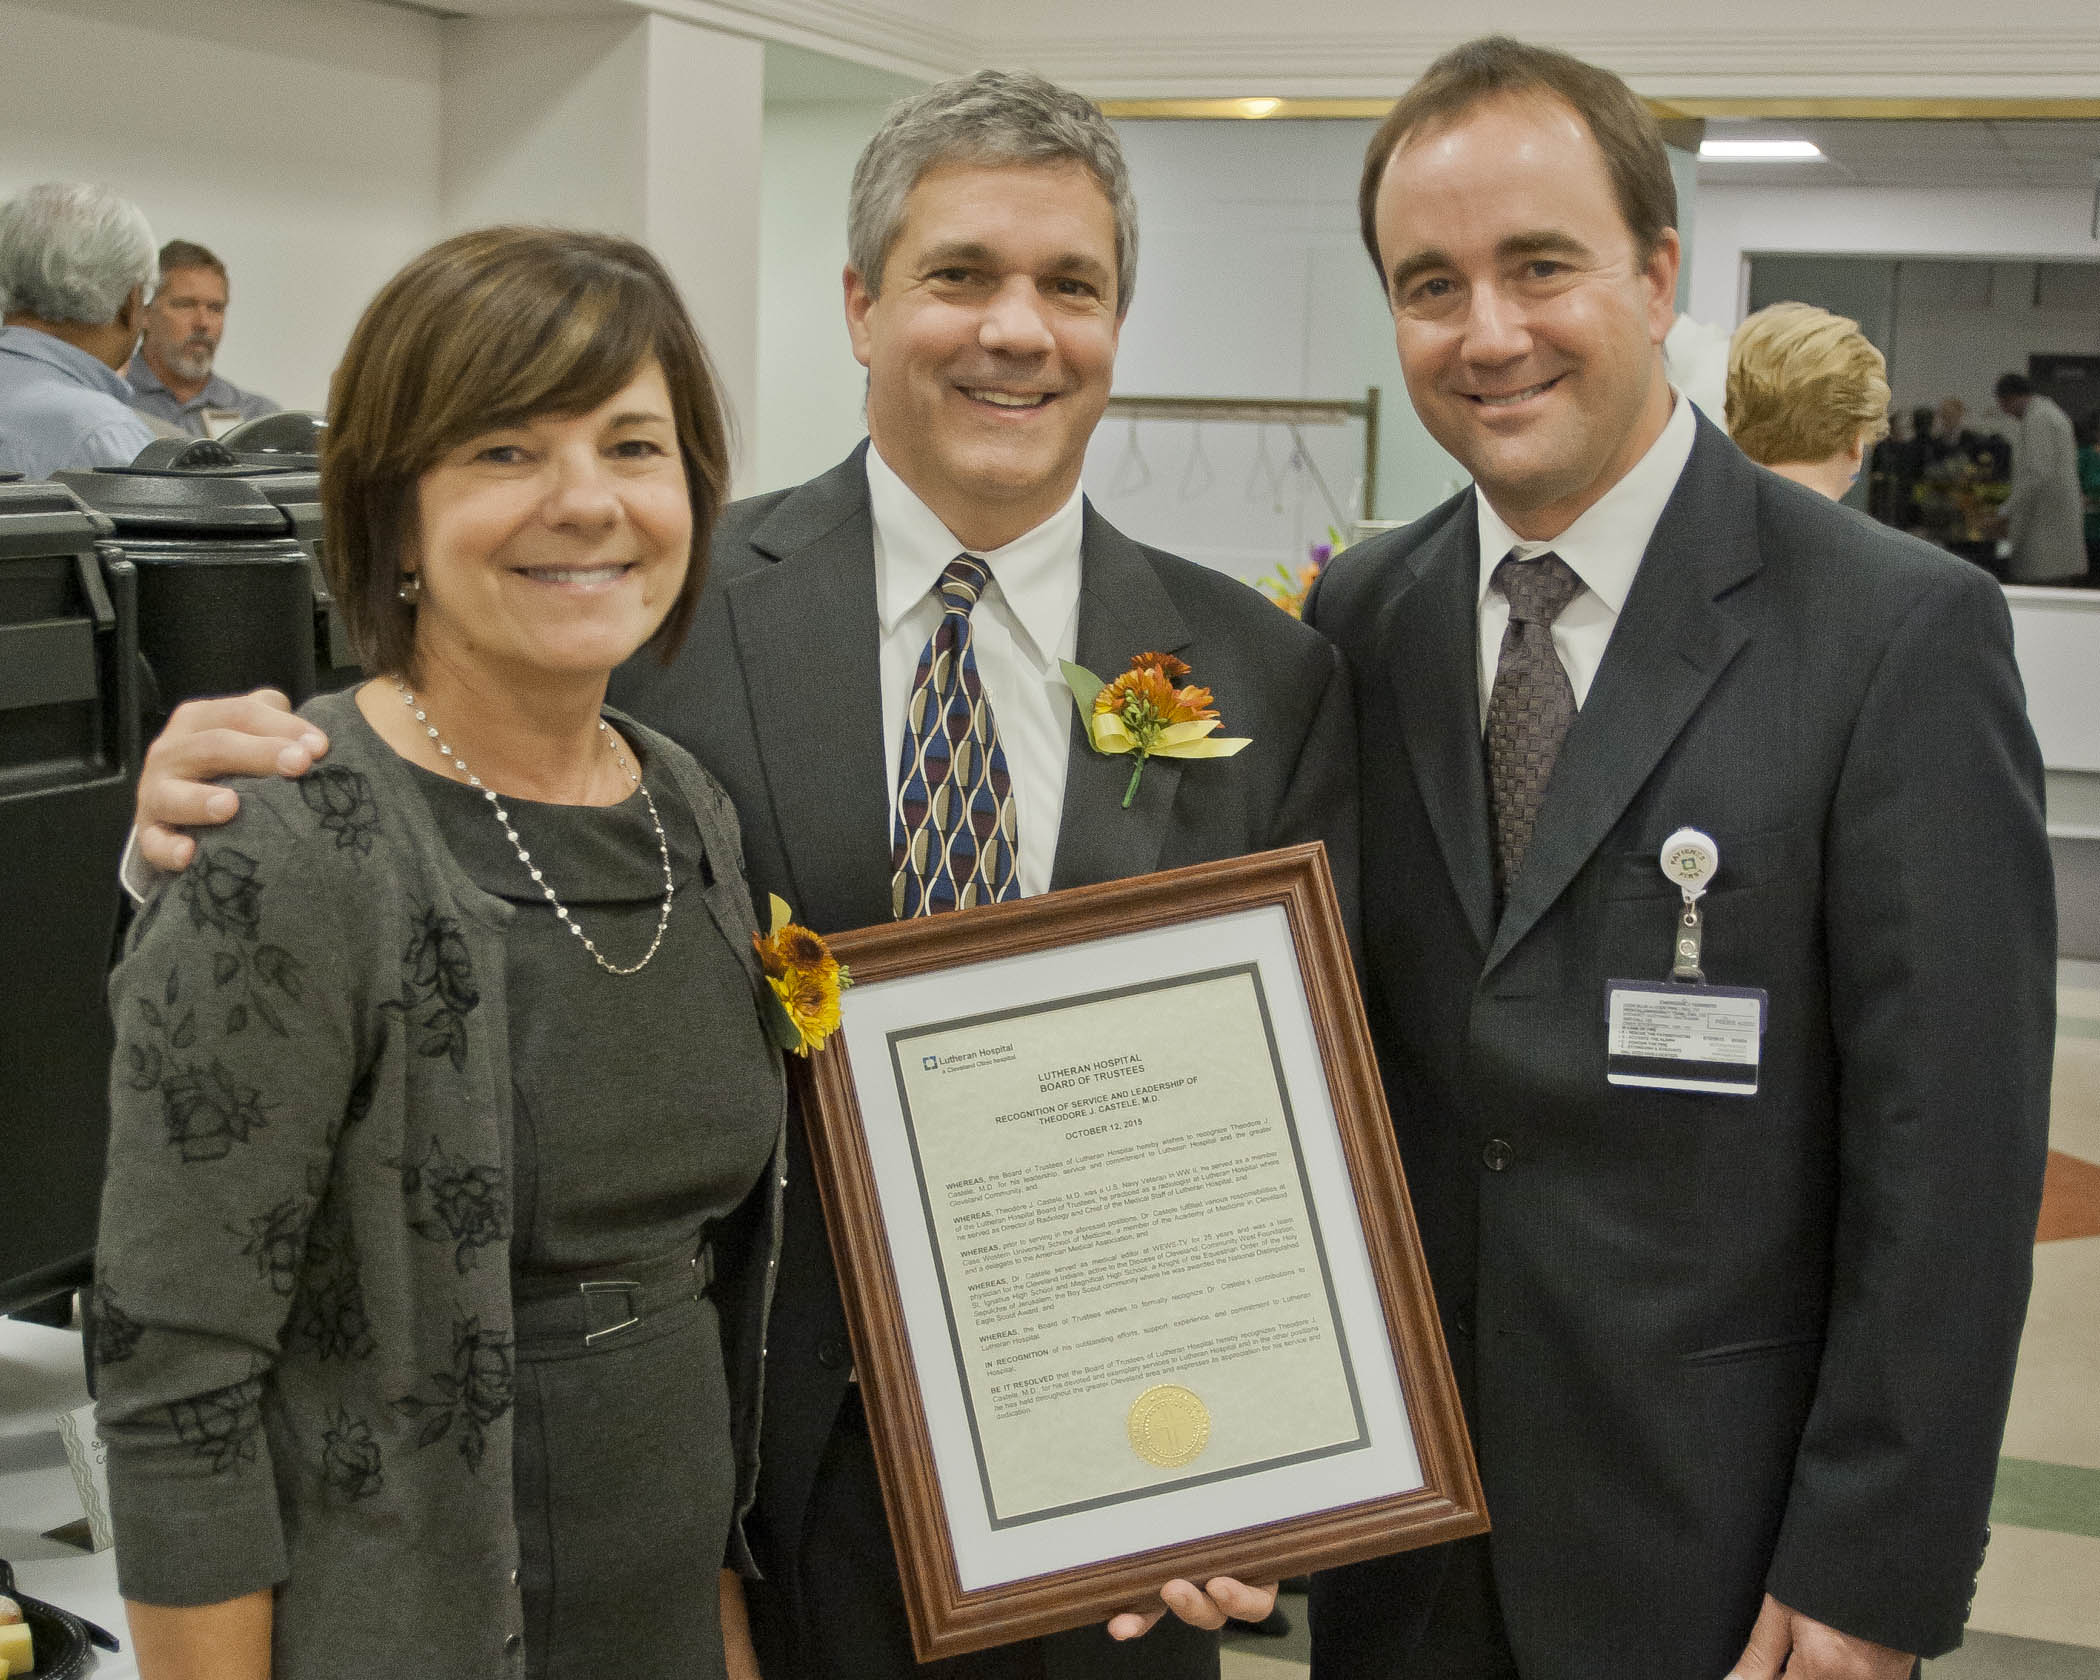 Celebrating the Life and Legacy of Dr  Ted Castele - The